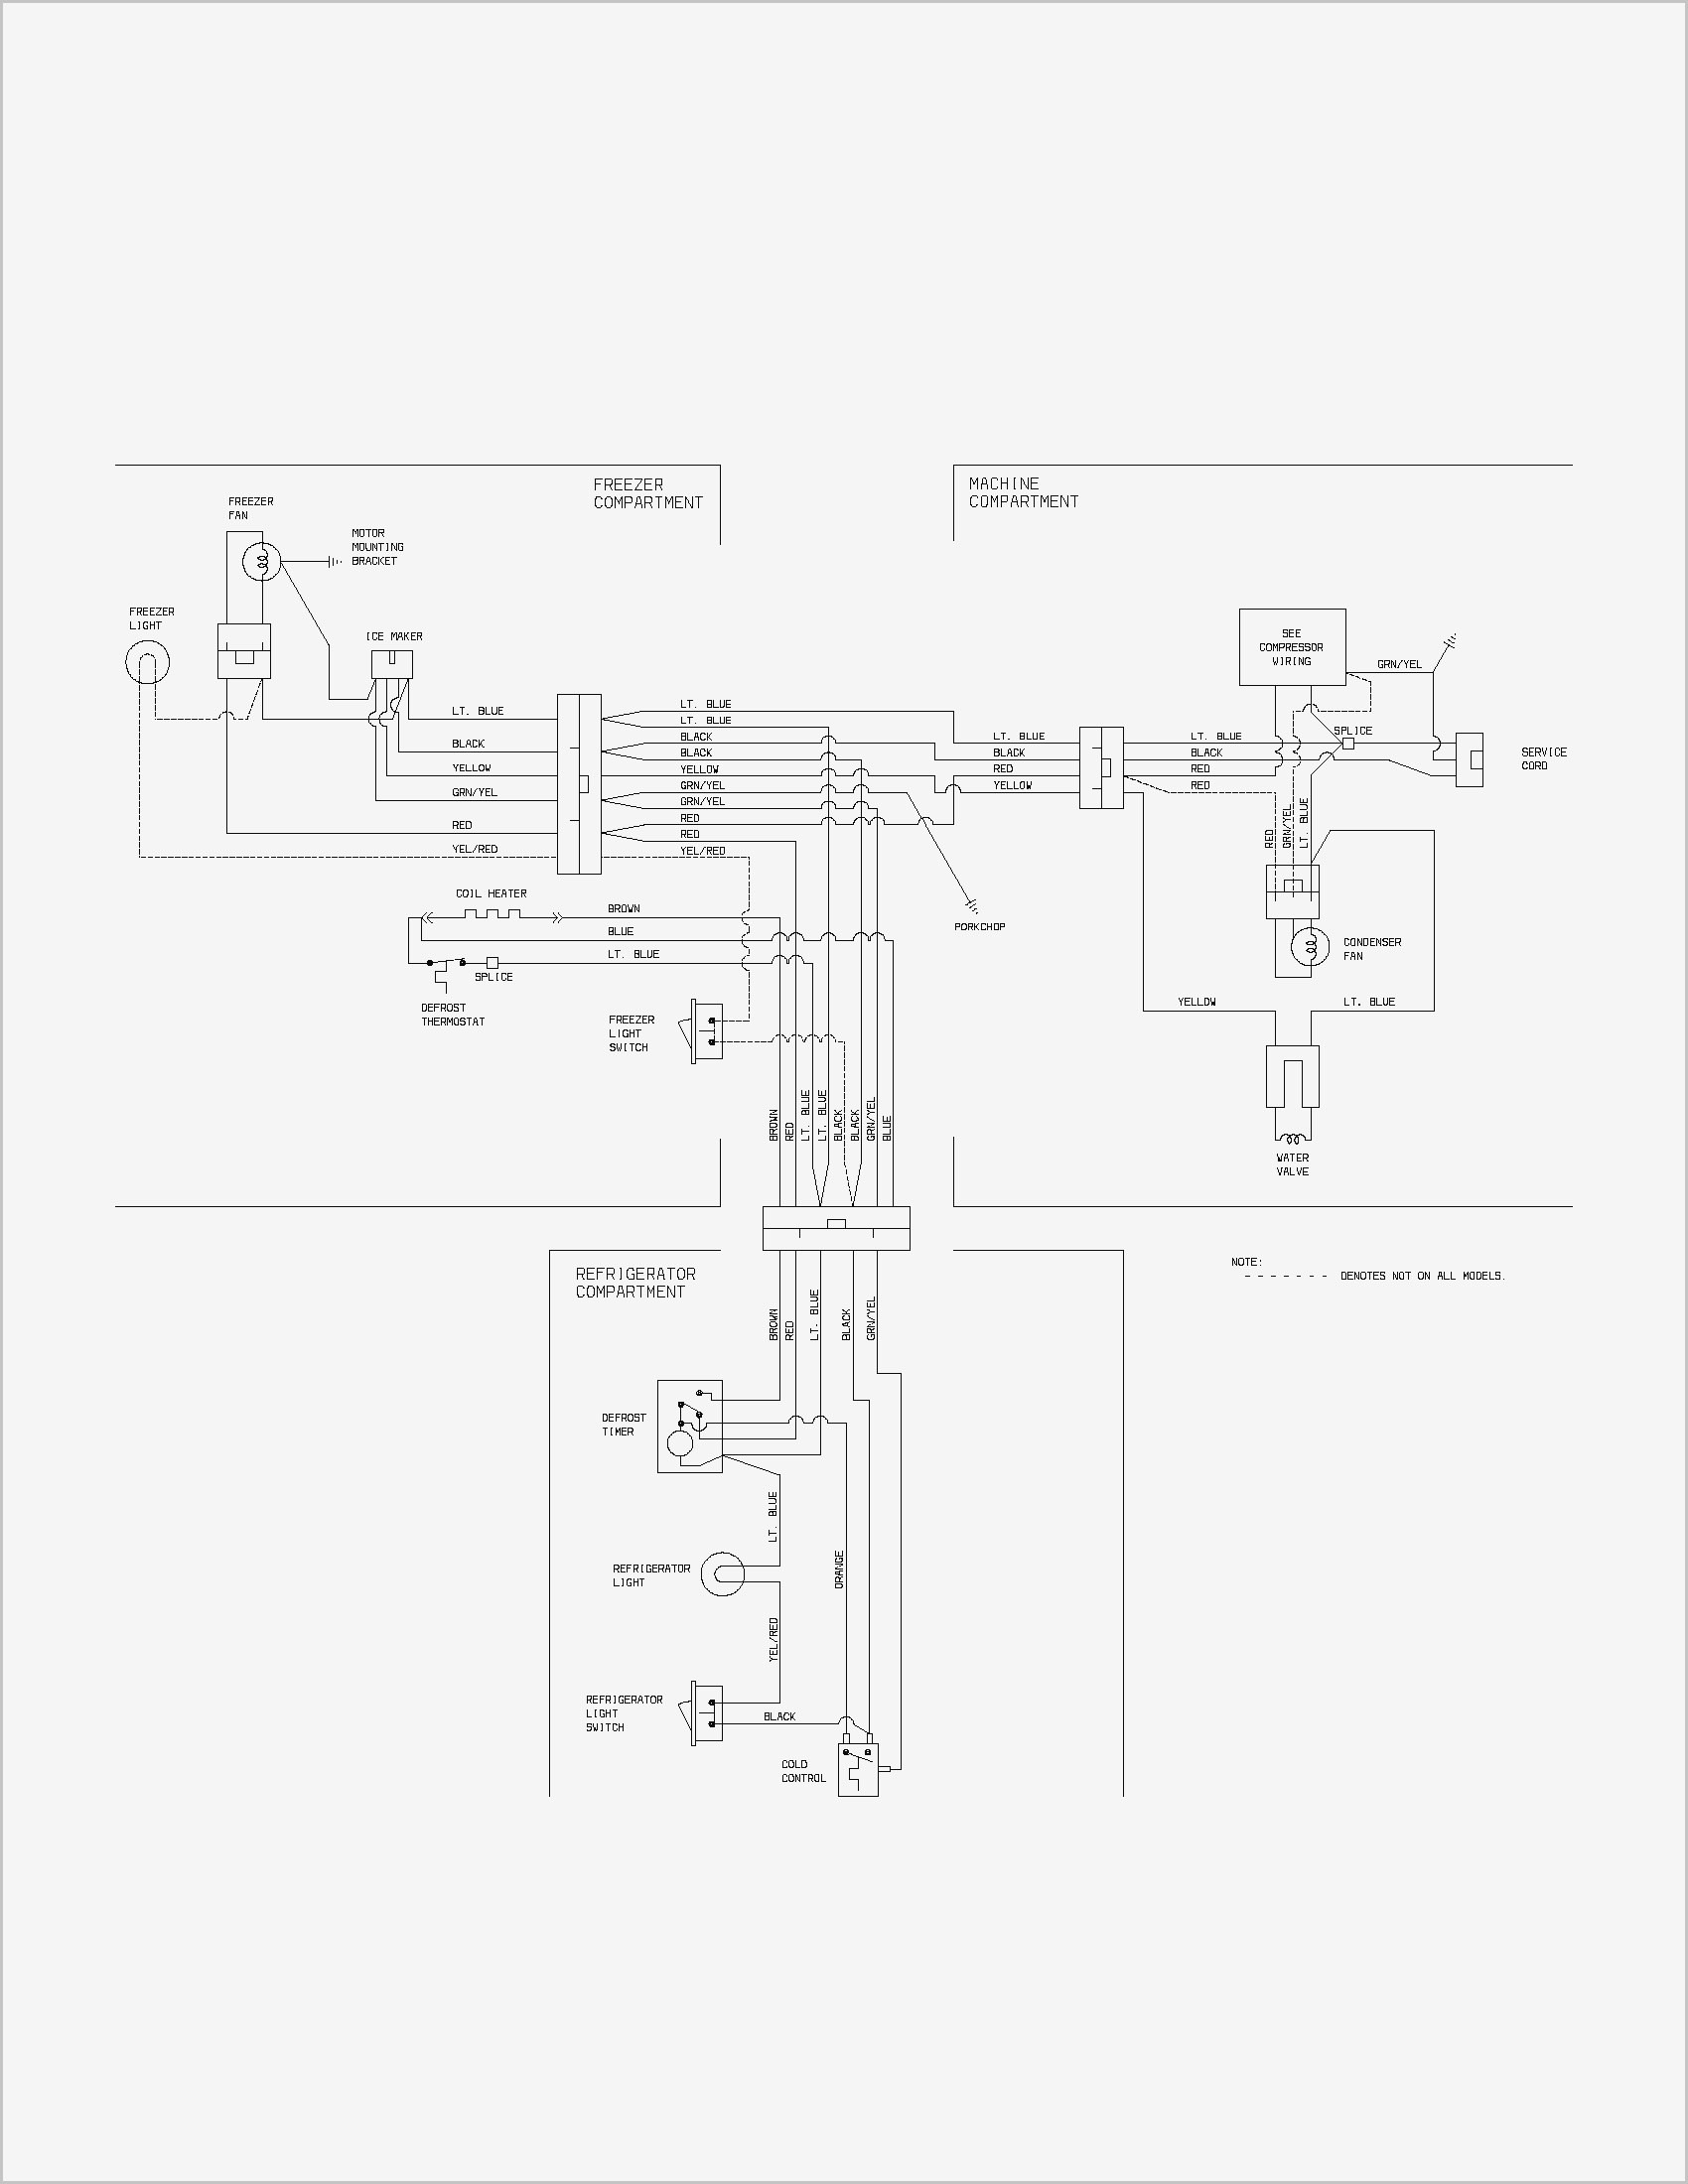 Wiring Photocell to Lighting Contactor 480v Cell Wiring Diagram Of Wiring Photocell to Lighting Contactor Eaton atc 800 Wiring Diagram Contactor Wiring Diagram A1 A2